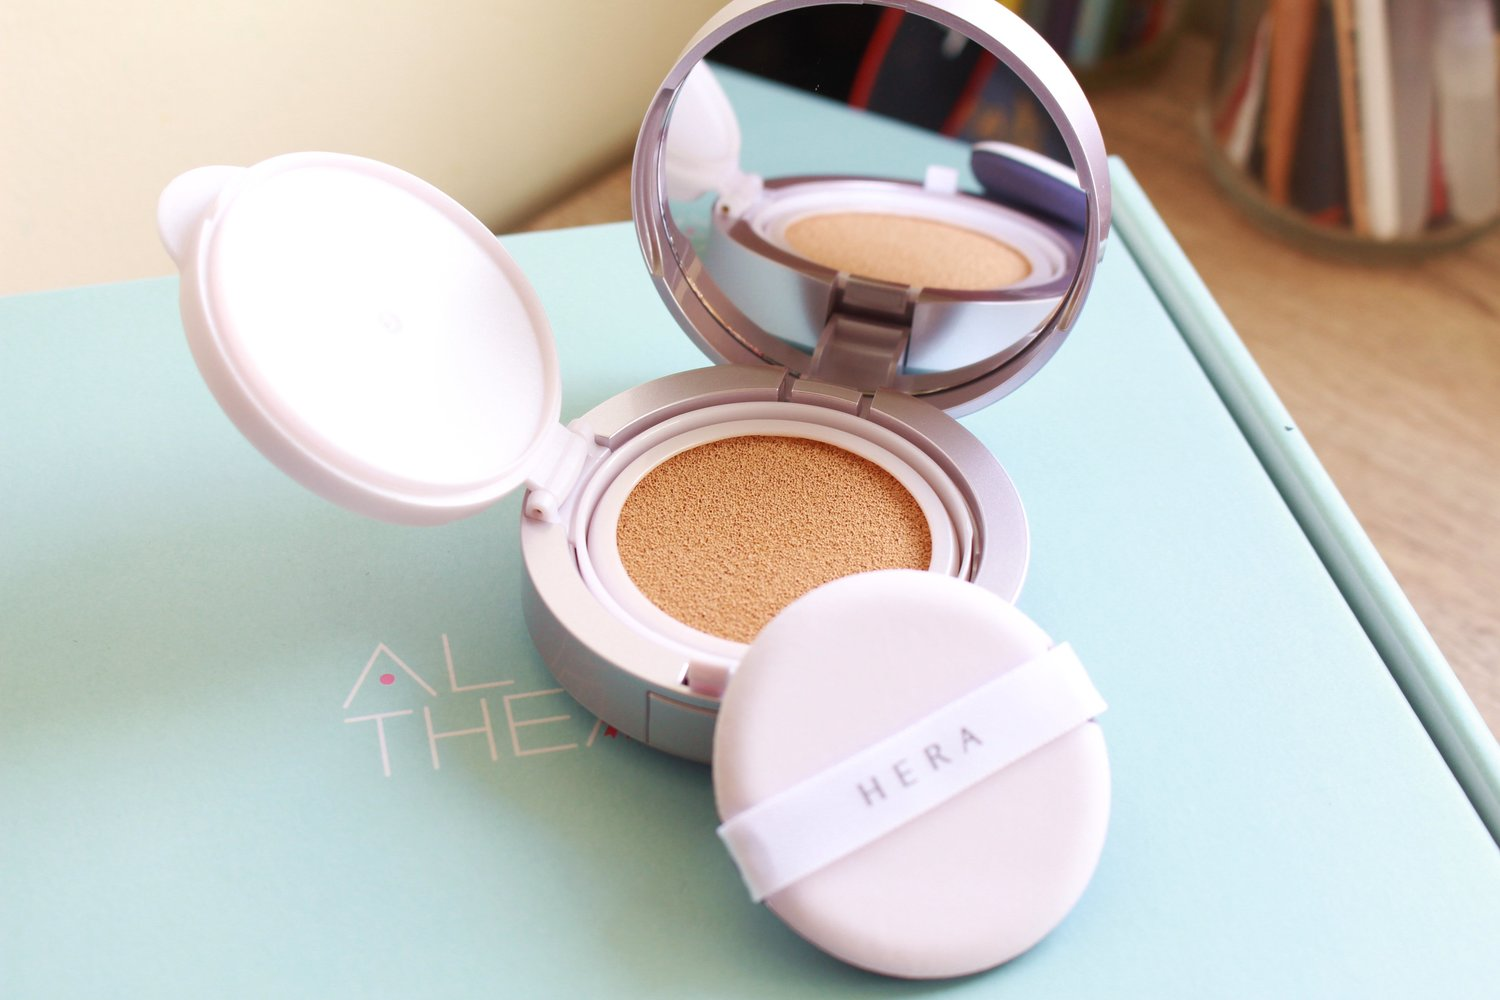 The Hera Uv Mist Cushion Nude Is A My Skin But Better Msbb